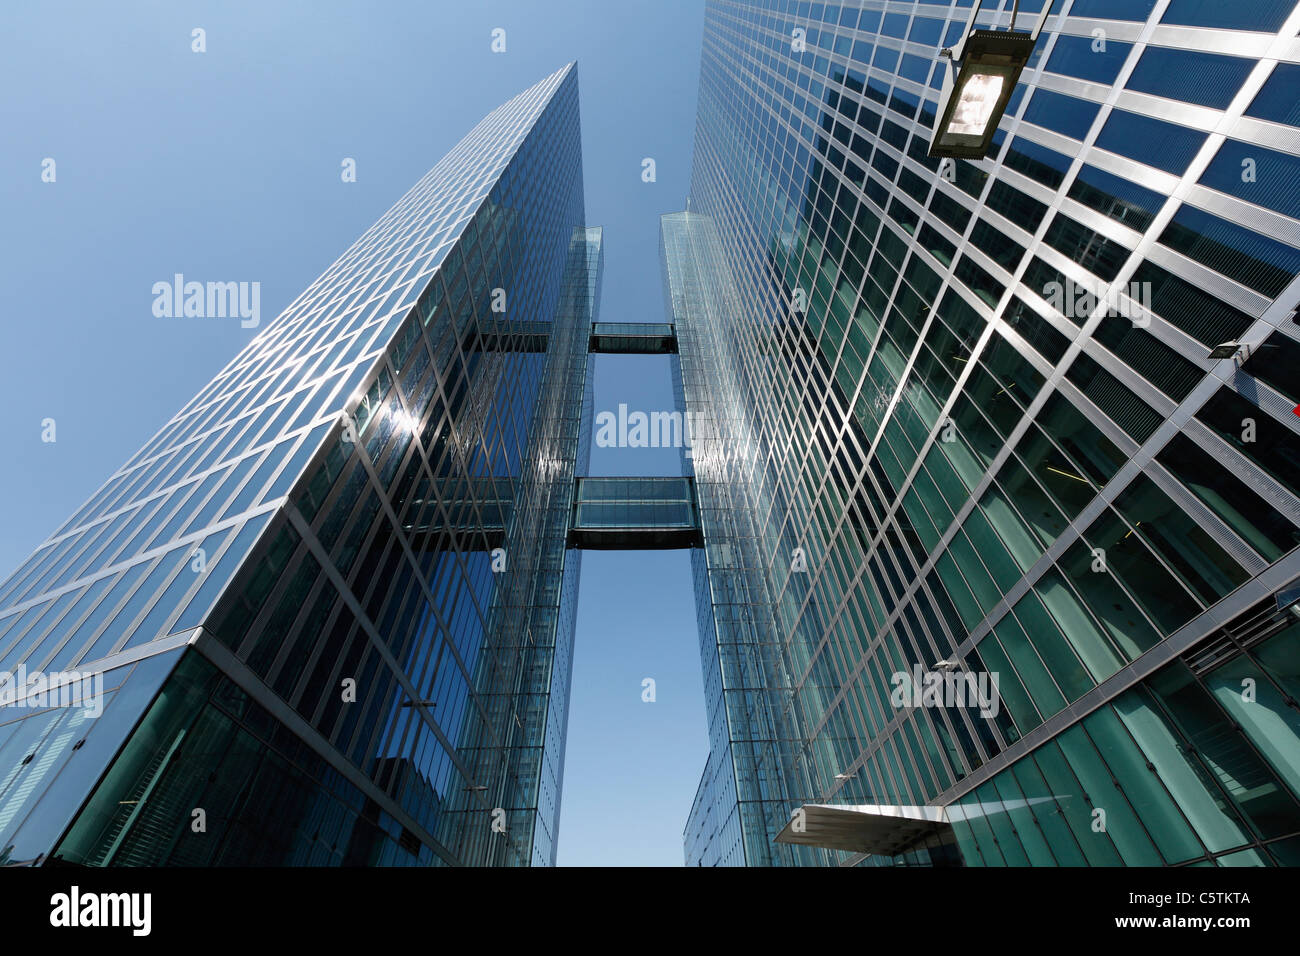 Germany, Bavaria, Munich, View of highlight towers - Stock Image